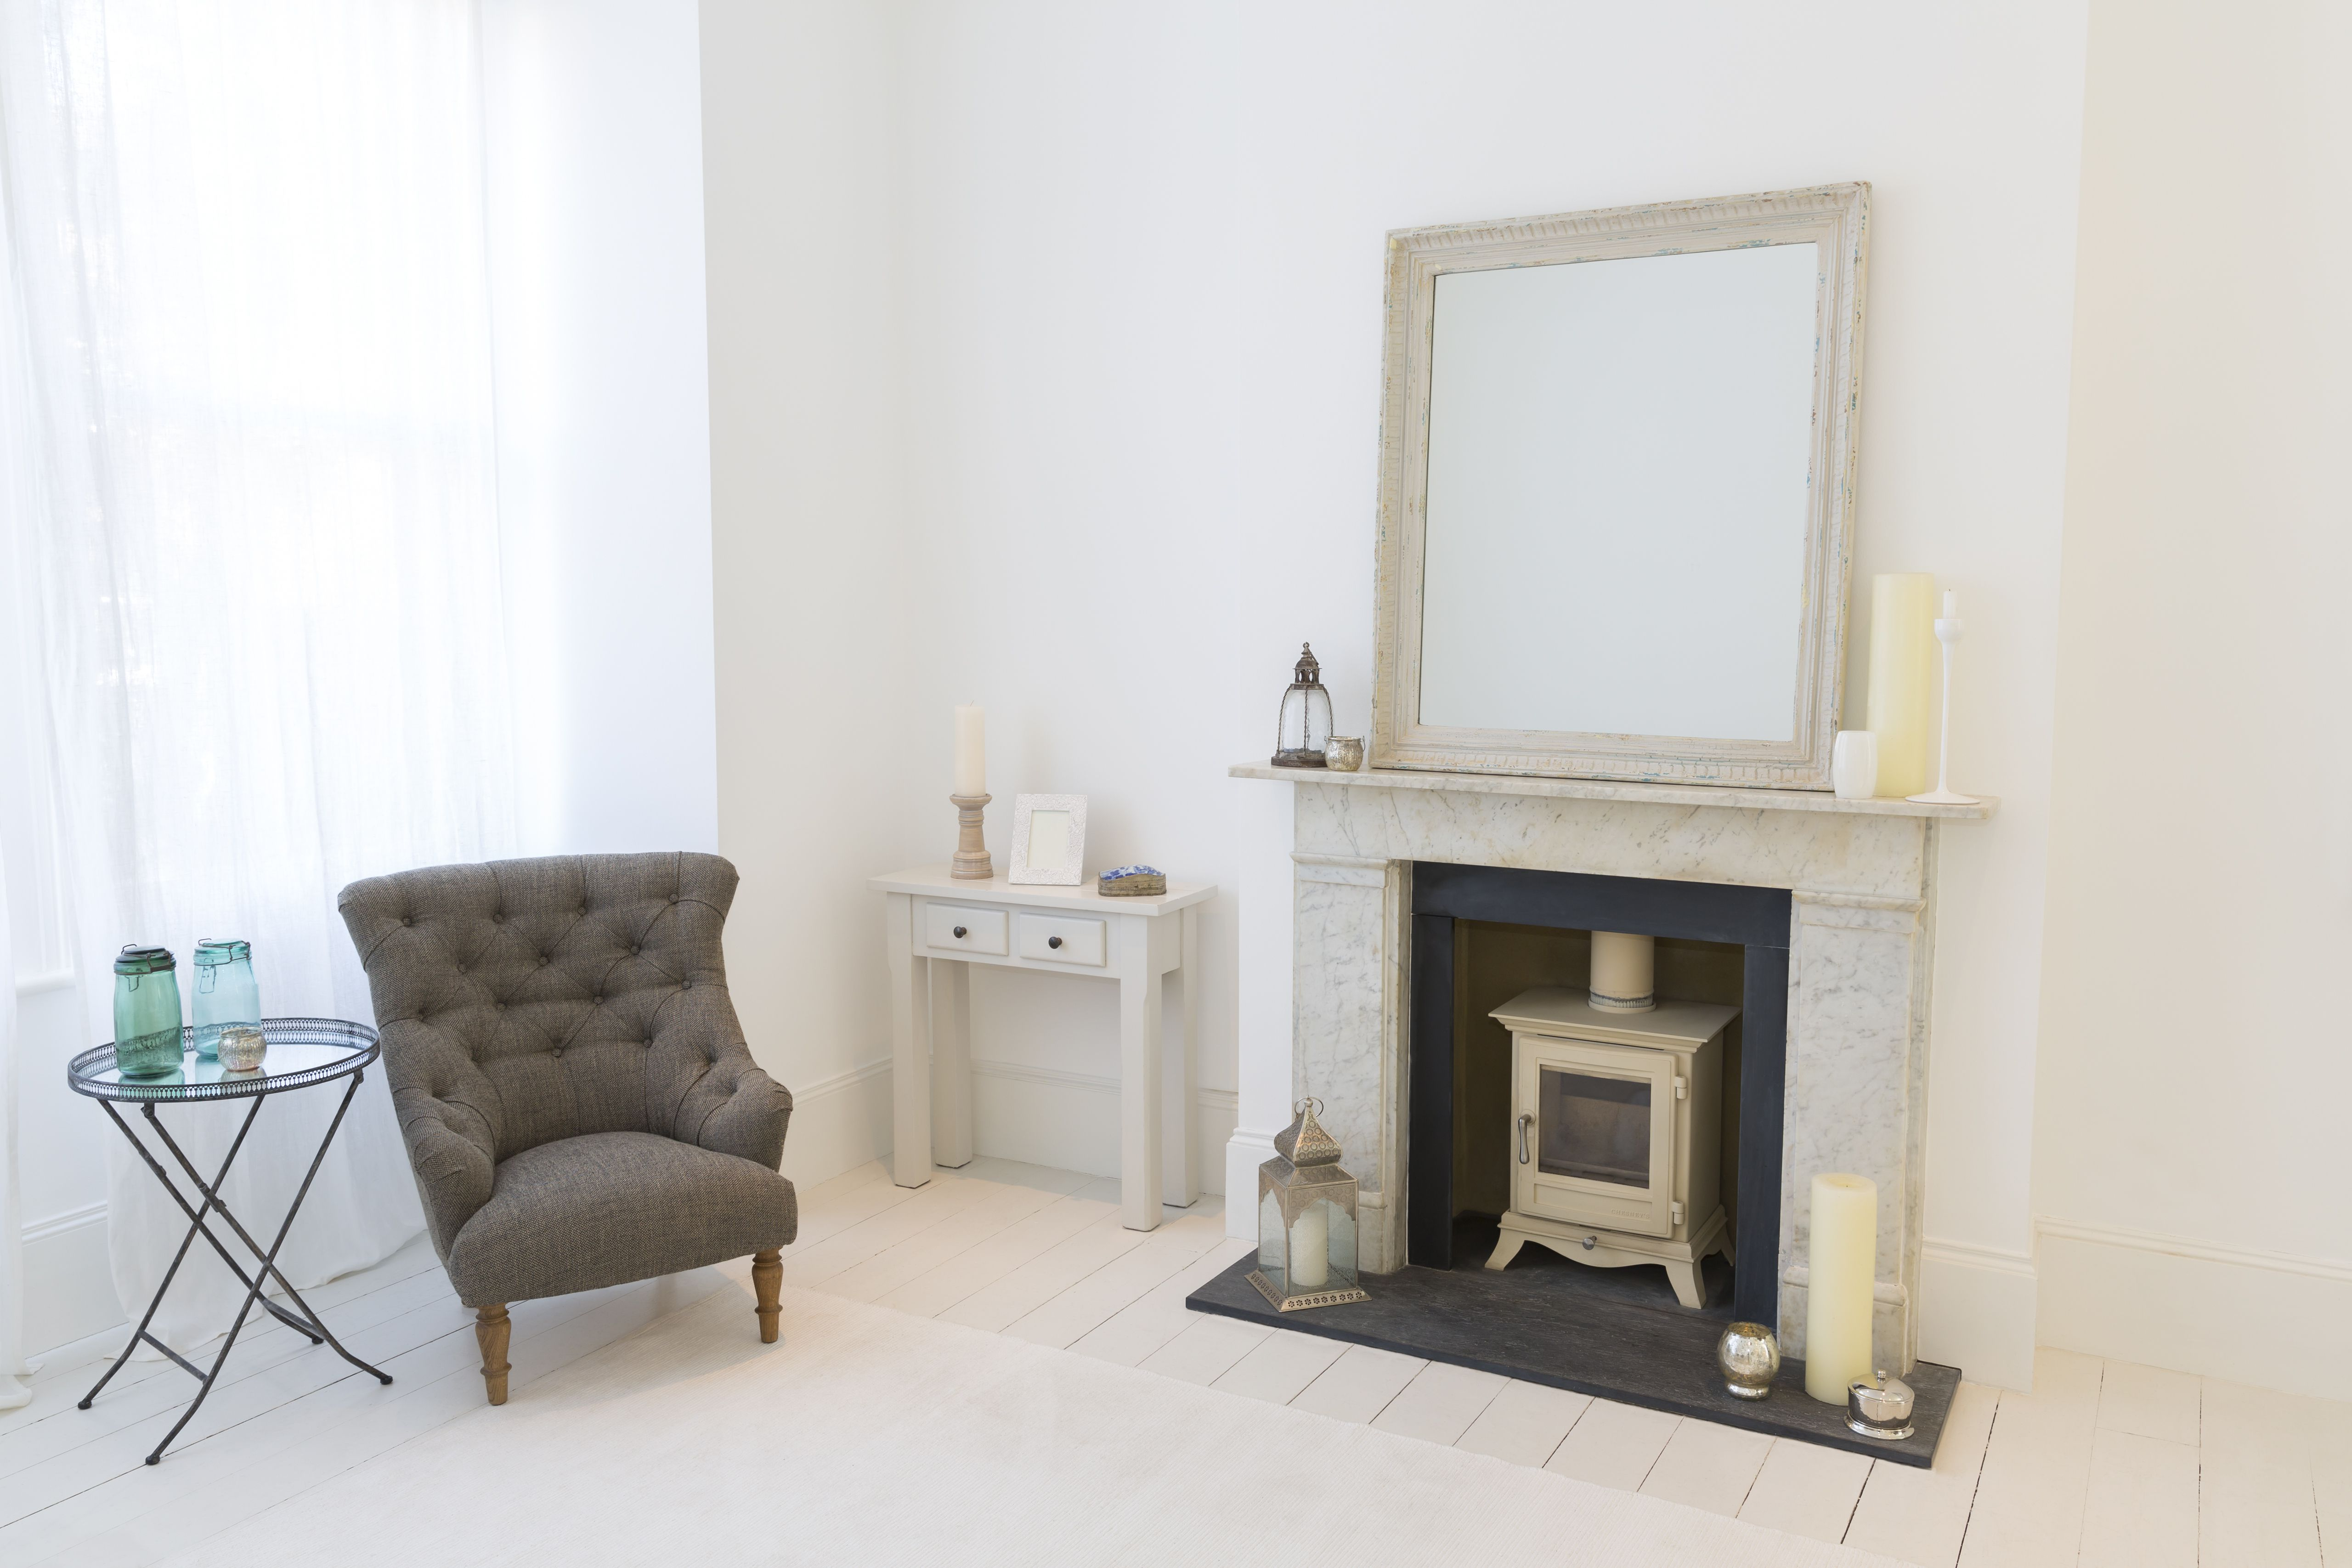 Armchair and fireplace in living room